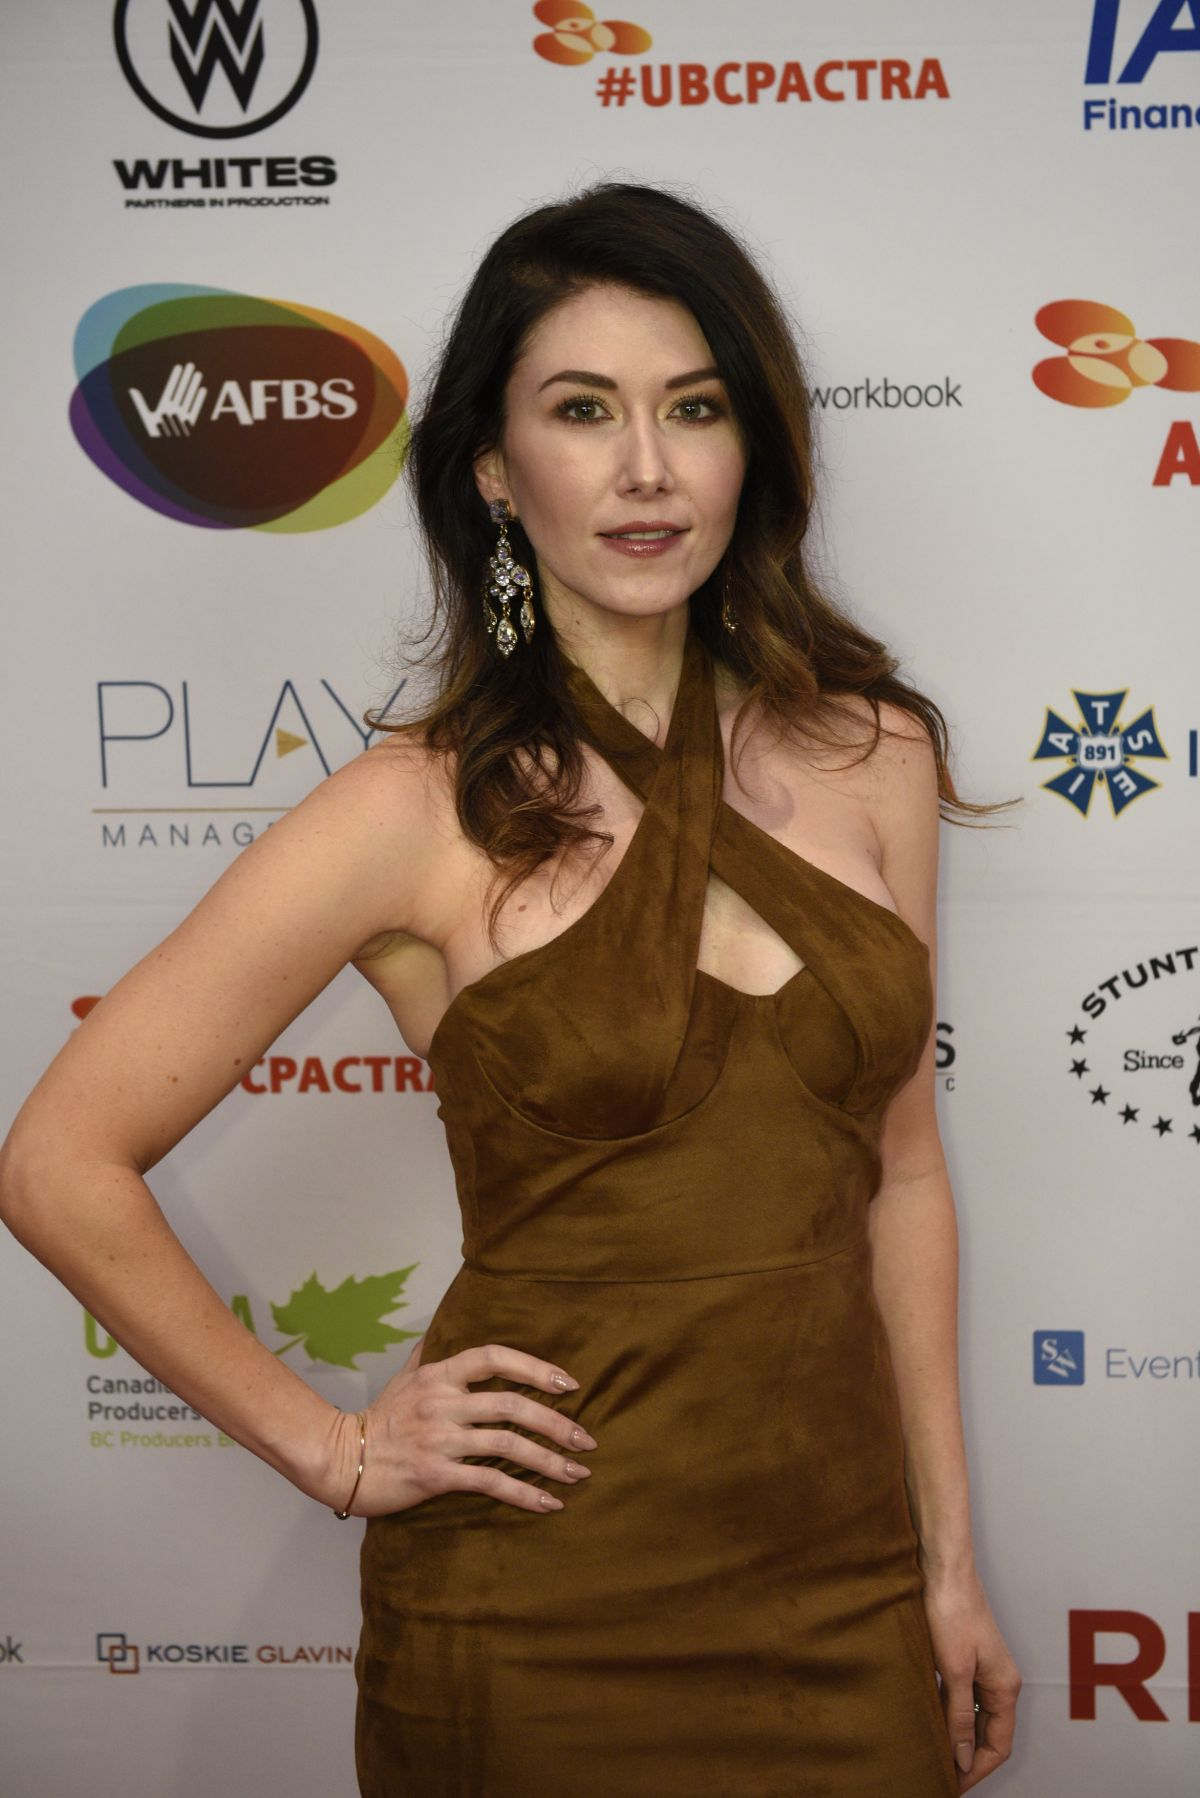 Jewel Staite Sexy Pics jewel staite at ubcp/actra awards gala at vancouver